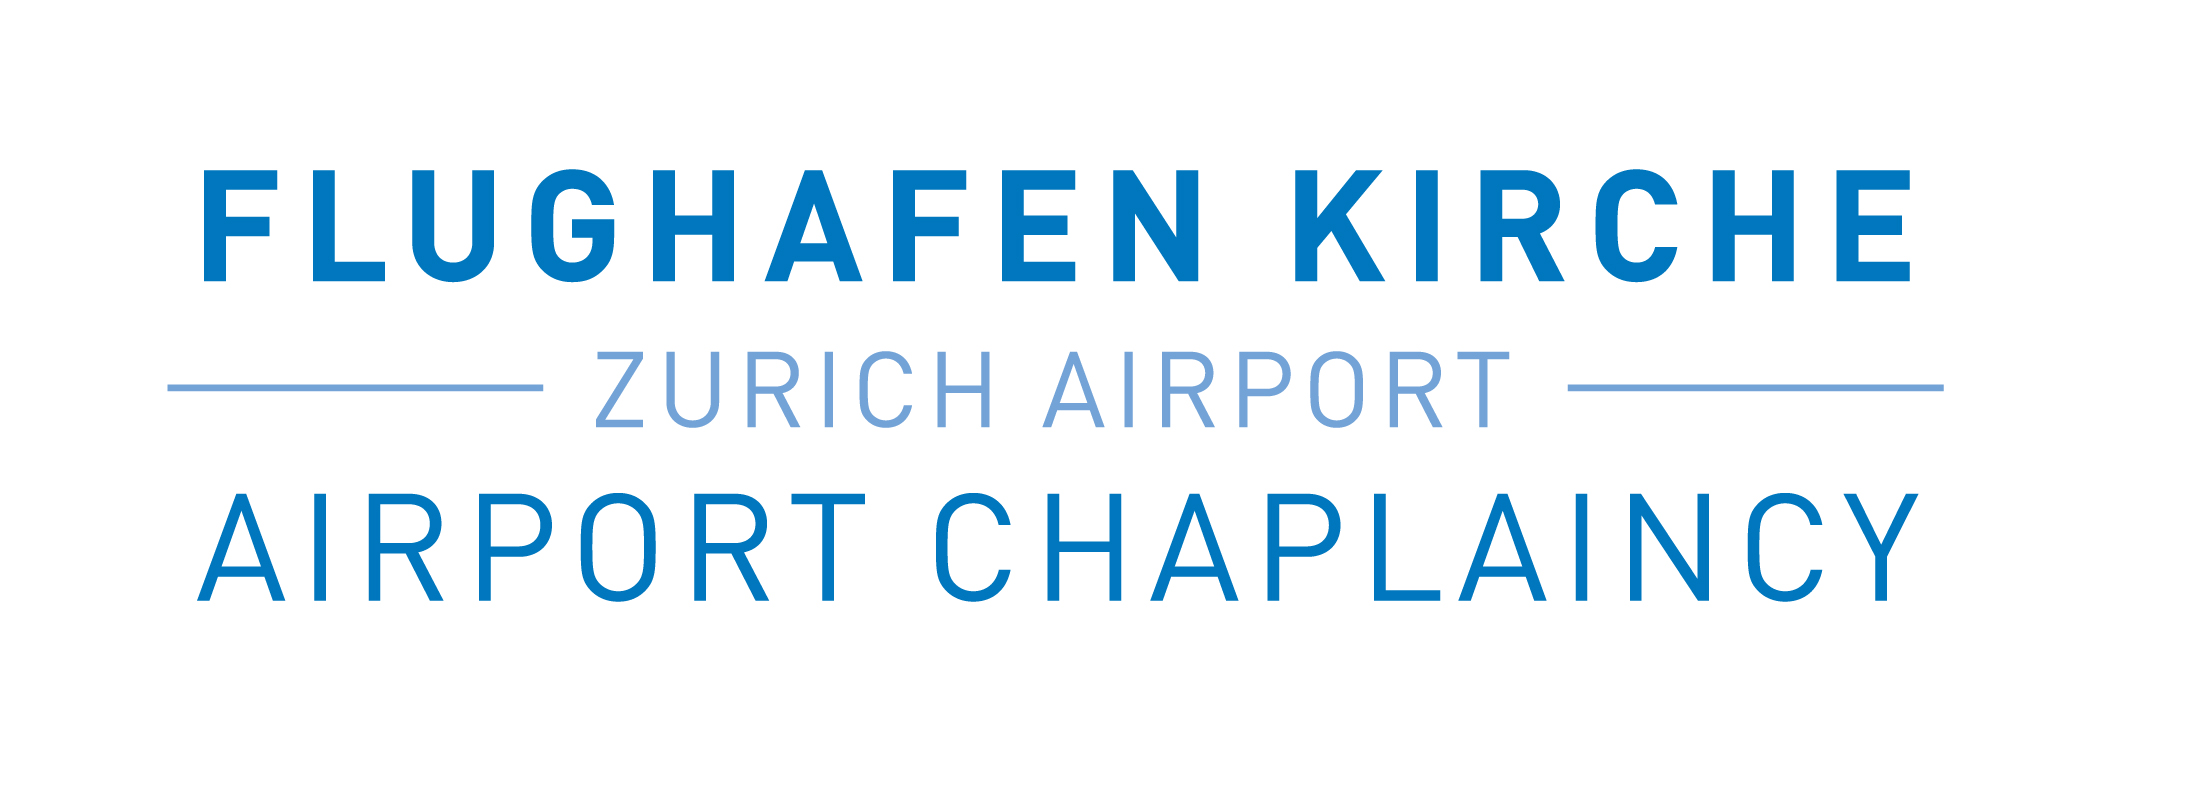 Flughafenkirche | Airport Chaplaincy | Airport Church -